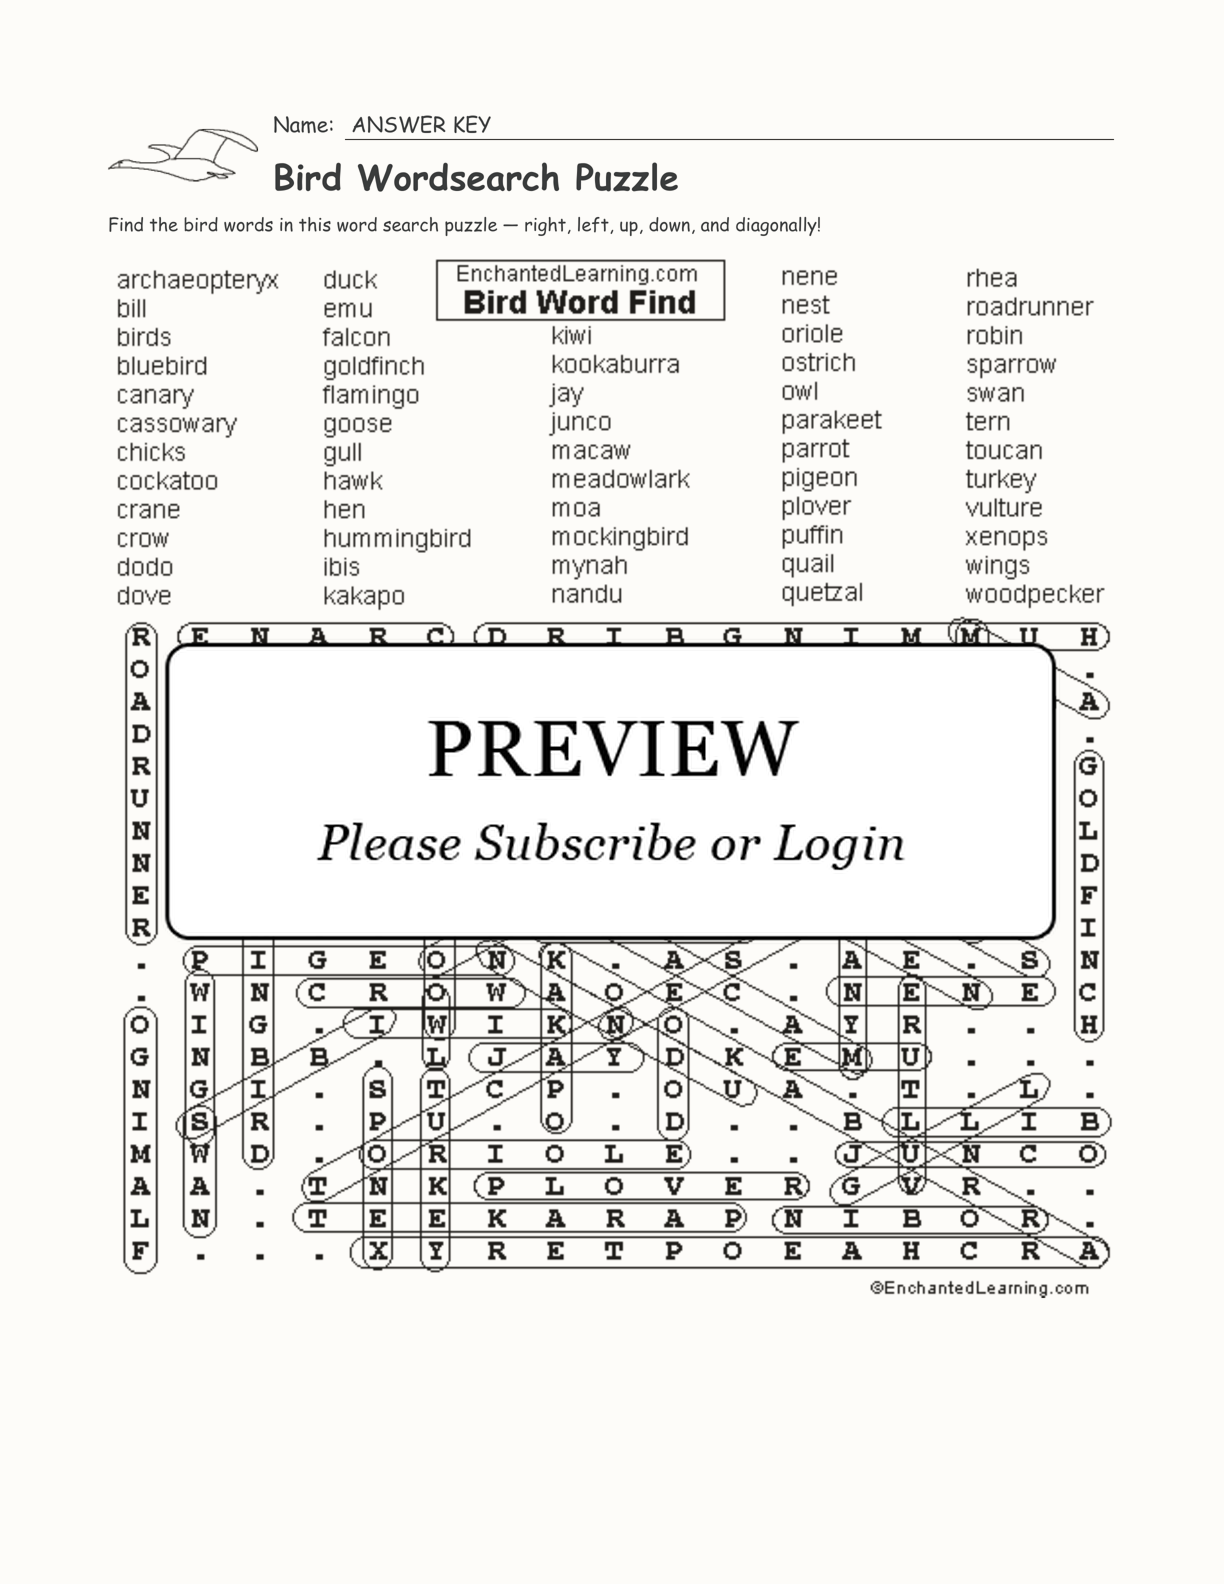 Bird Wordsearch Puzzle interactive worksheet page 2